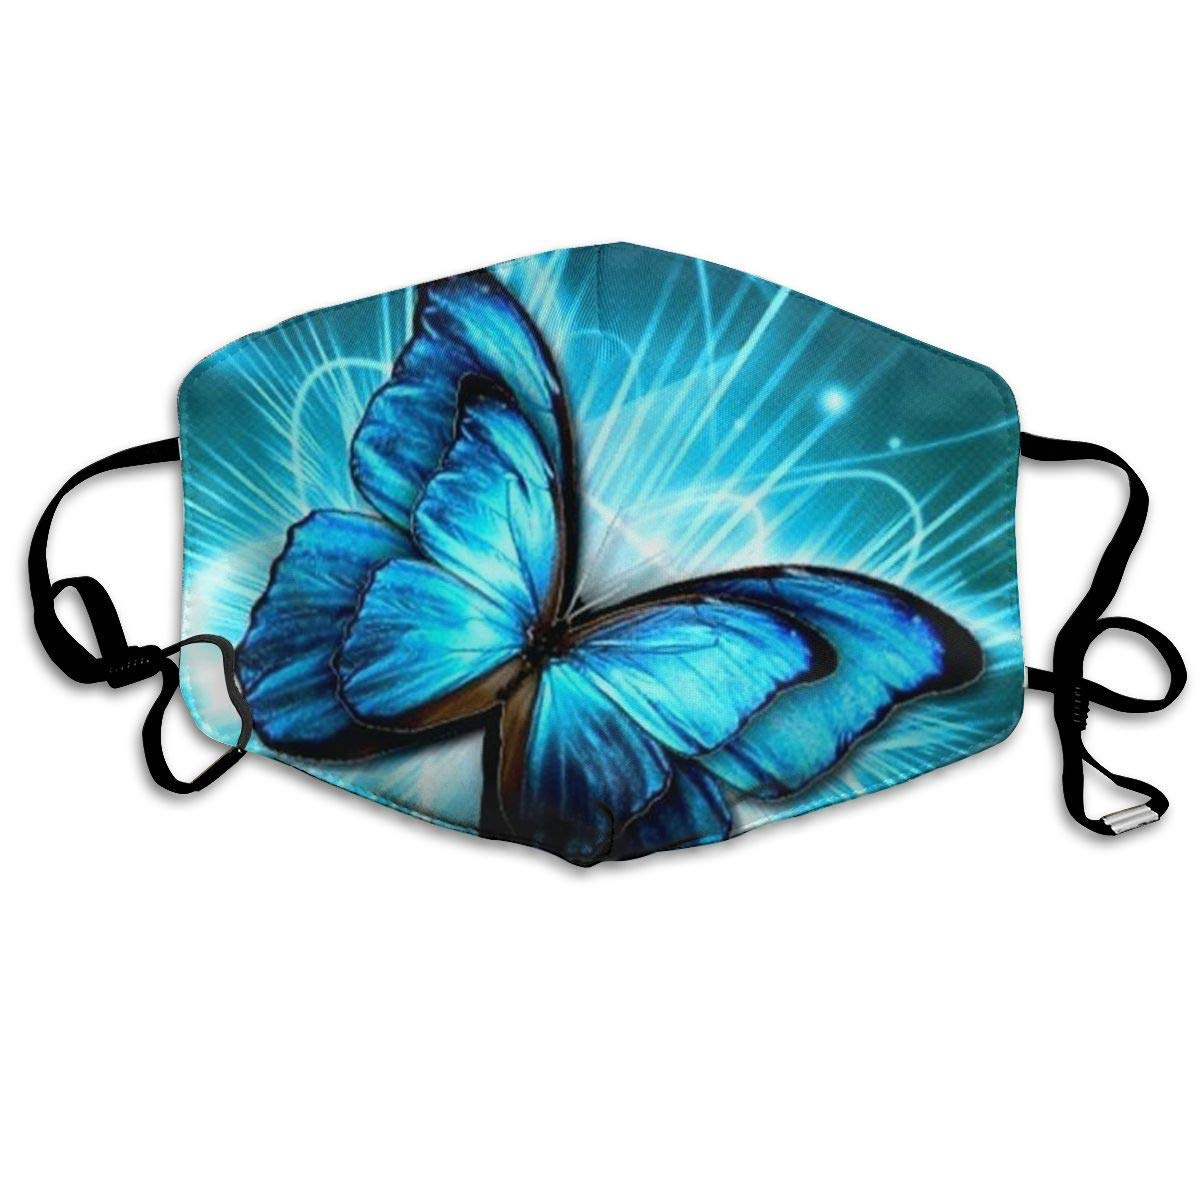 Bdwuhs Mascarillas Bucales,Boca Máscara Dust Mask for Women and Men Blue Butterfly Printed Foldable Mask Face Mask Anti-Dust Mouth Mask